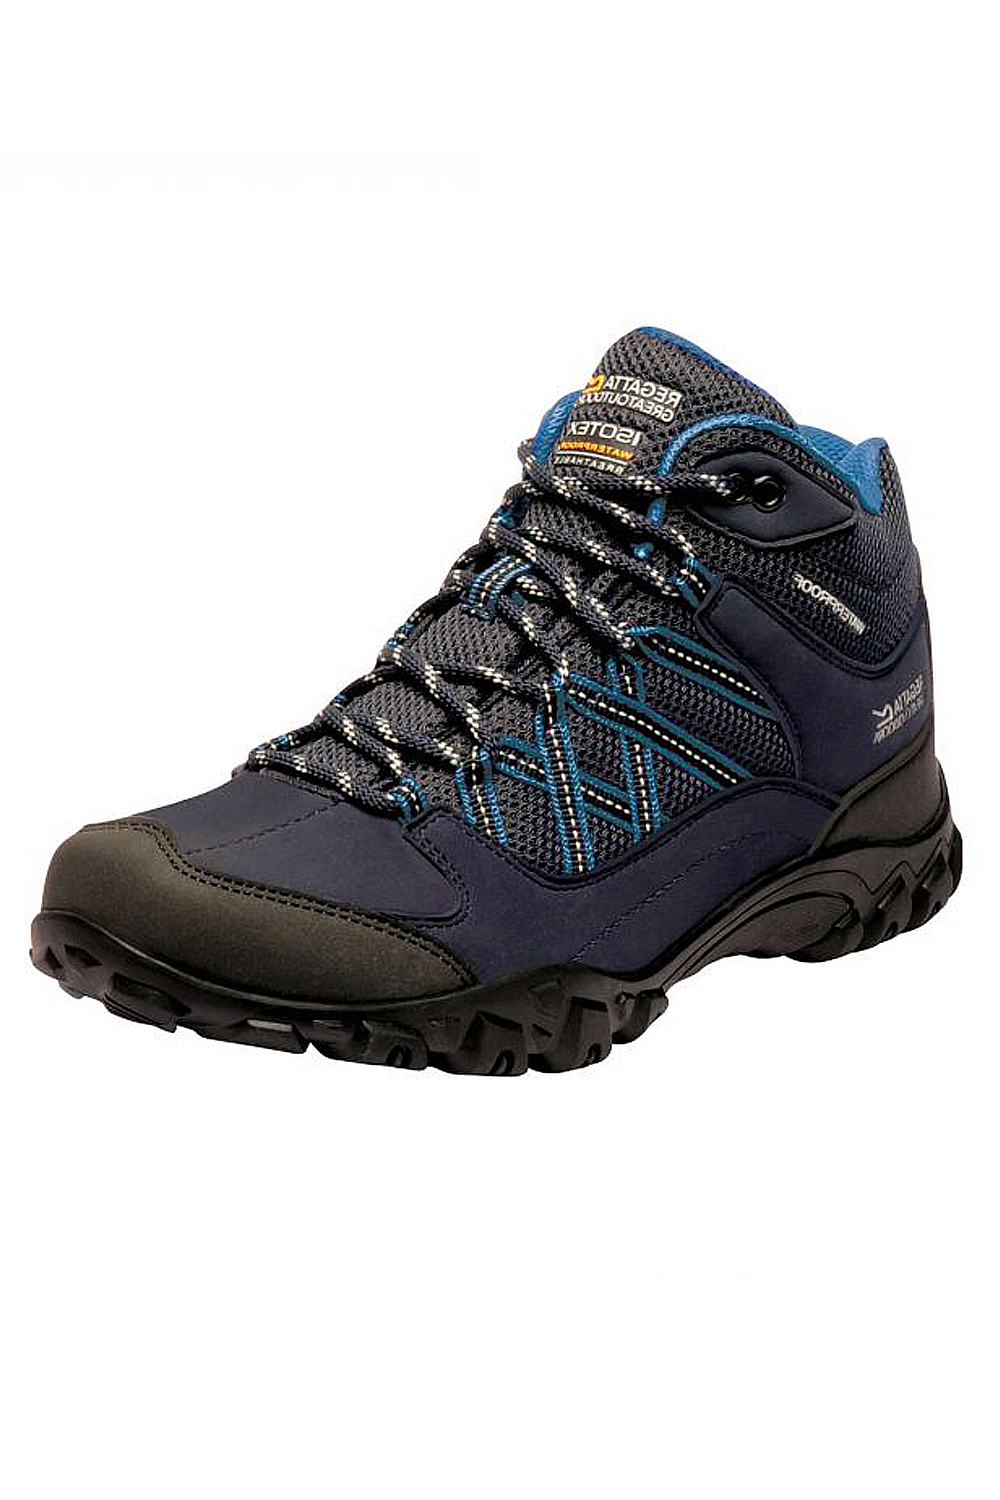 Details about Regatta Womens Edgepoint Walking & Hiking Boots For Sports Outdoors Trail Shoes